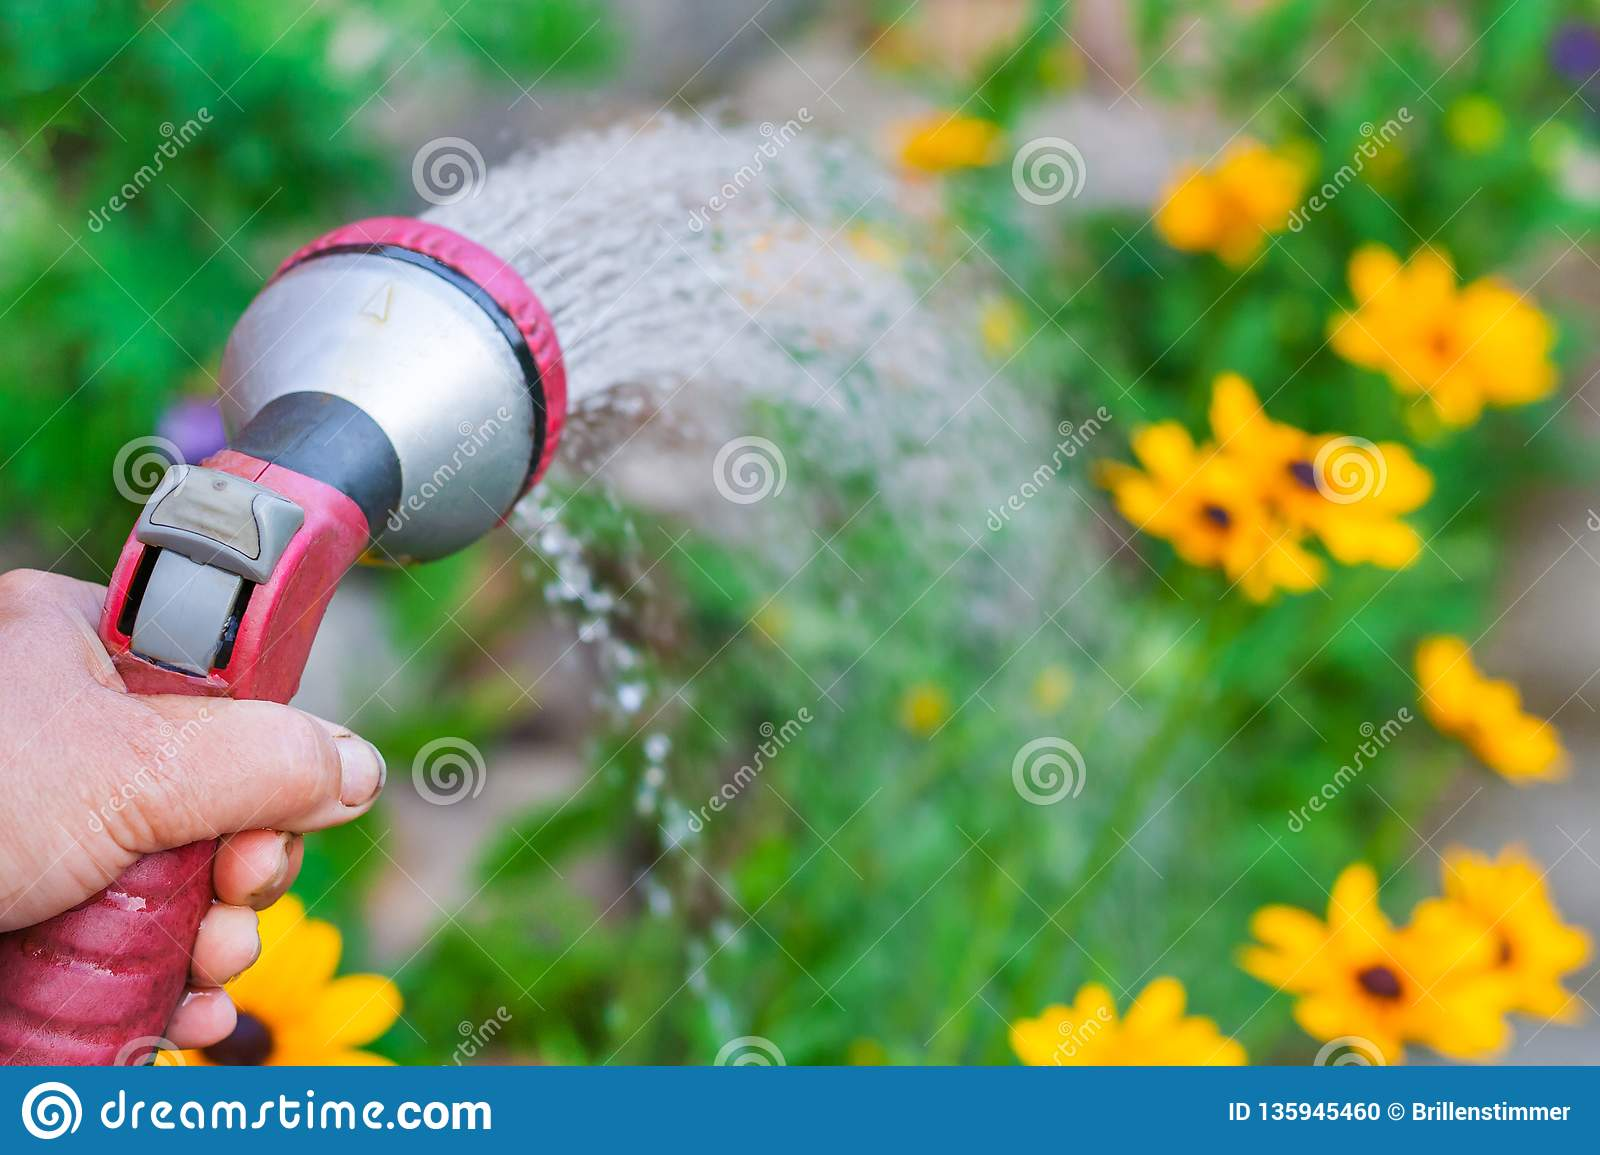 A hand with spray gun, watering a yellow flowers